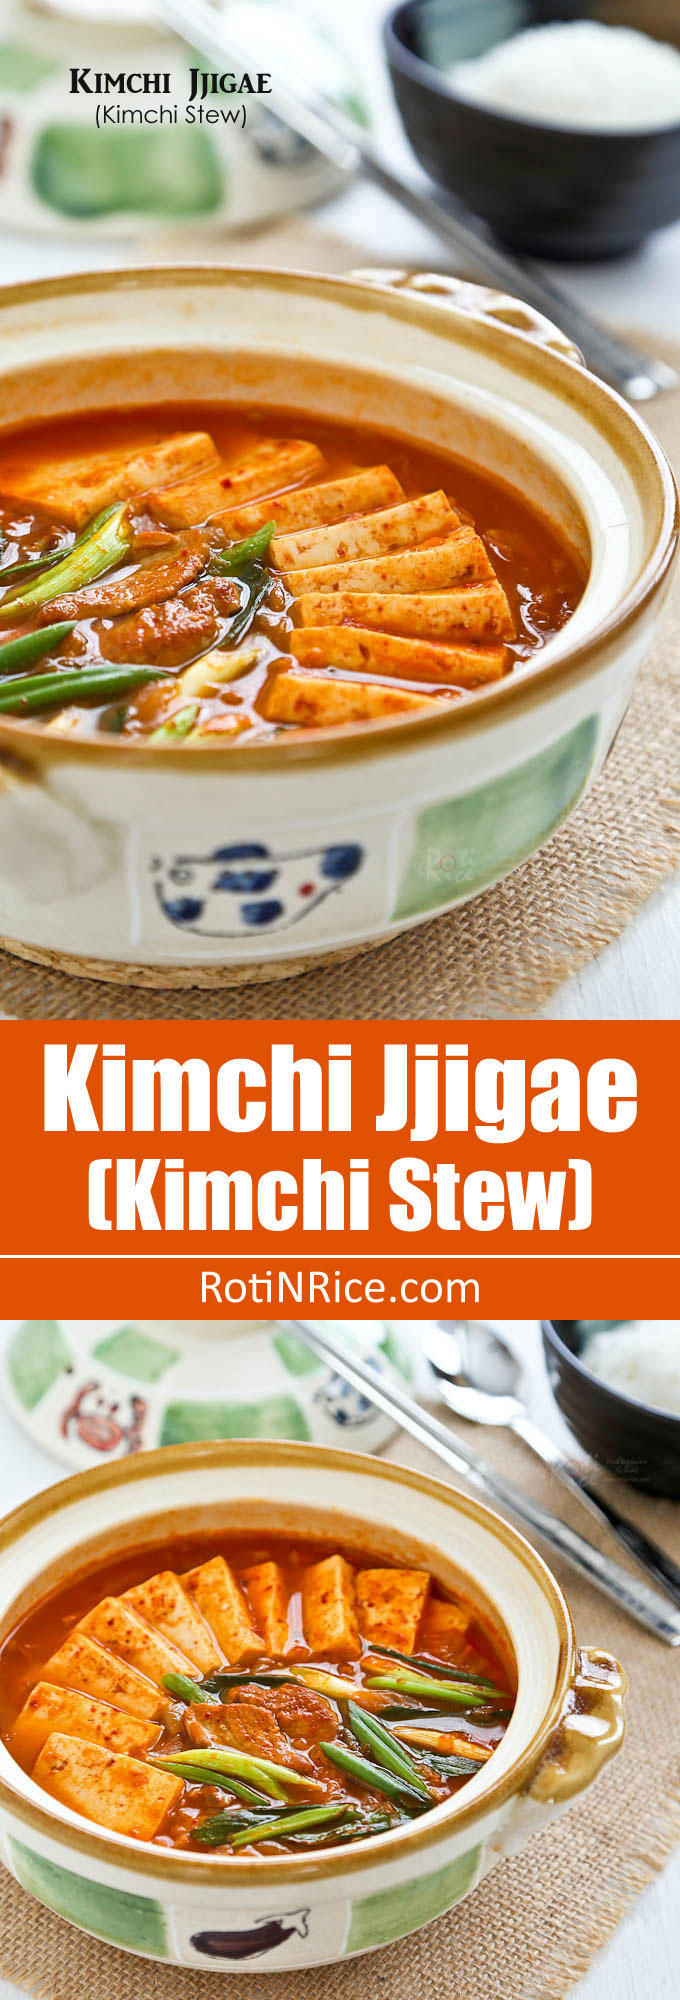 Kimchi Jjigae (Kimchi Stew), a popular spicy Korean stew made with fermented Napa cabbage kimchi, pork (or beef), and tofu. Quick and easy to prepare. | RotiNRice.com